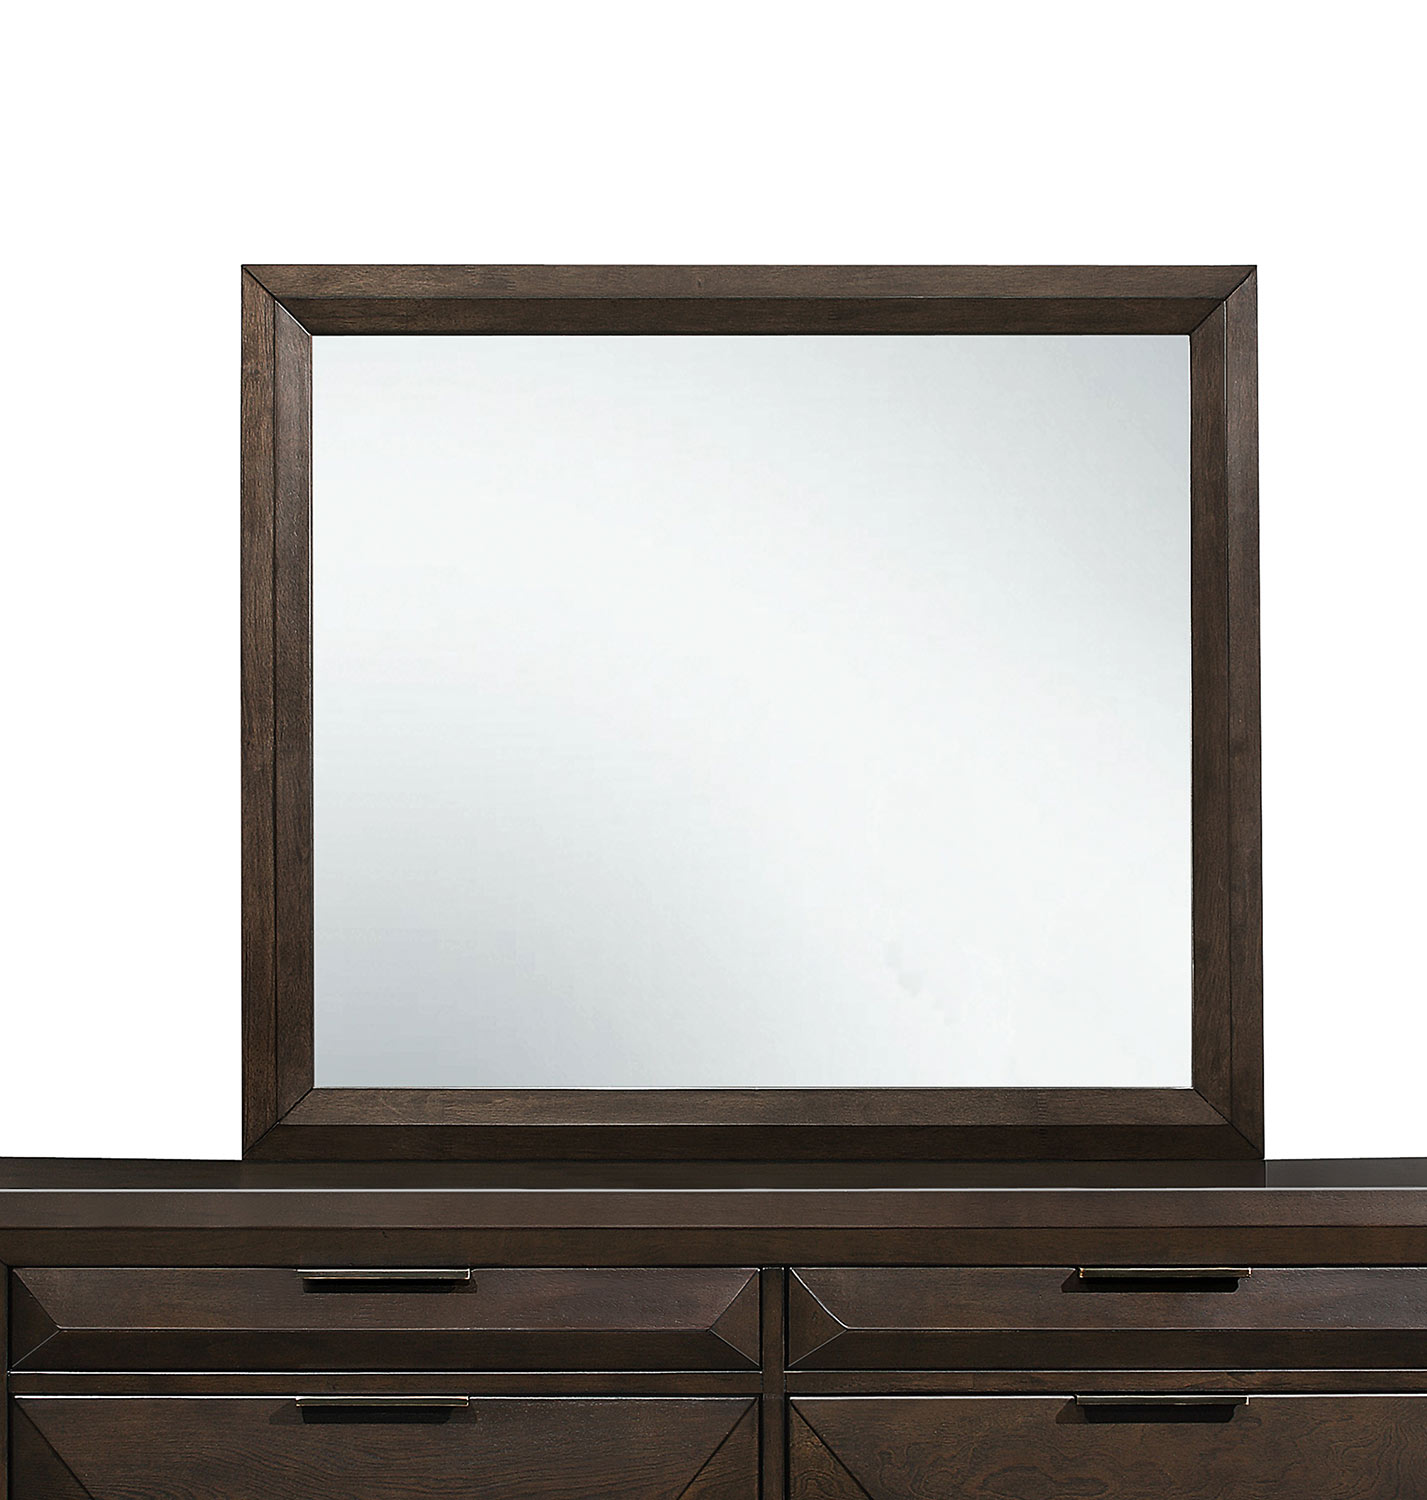 Homelegance Chesky Mirror - Warm Espresso